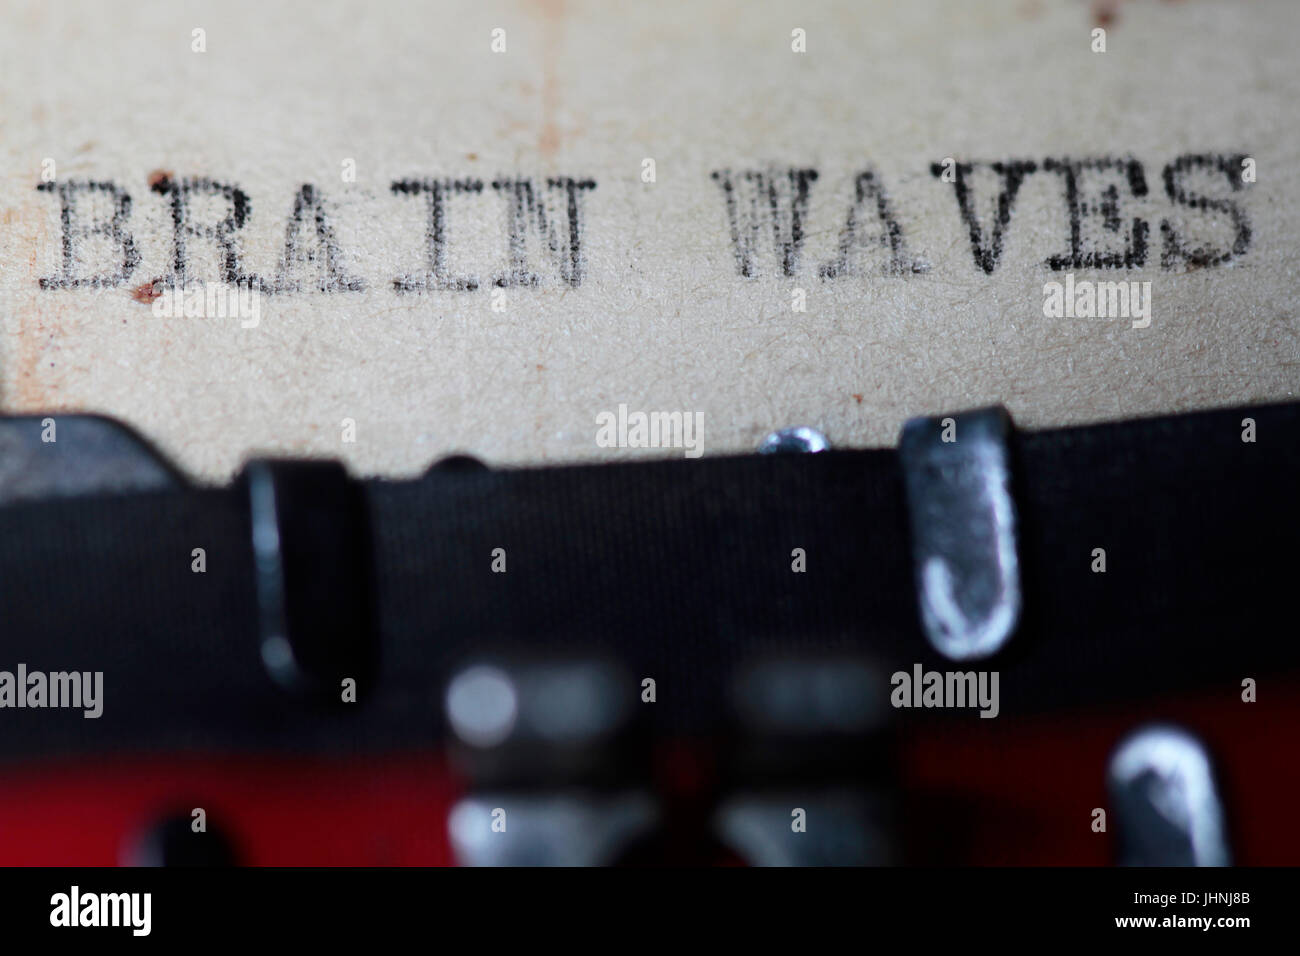 Brain waves typed in an old vintage paper - Stock Image